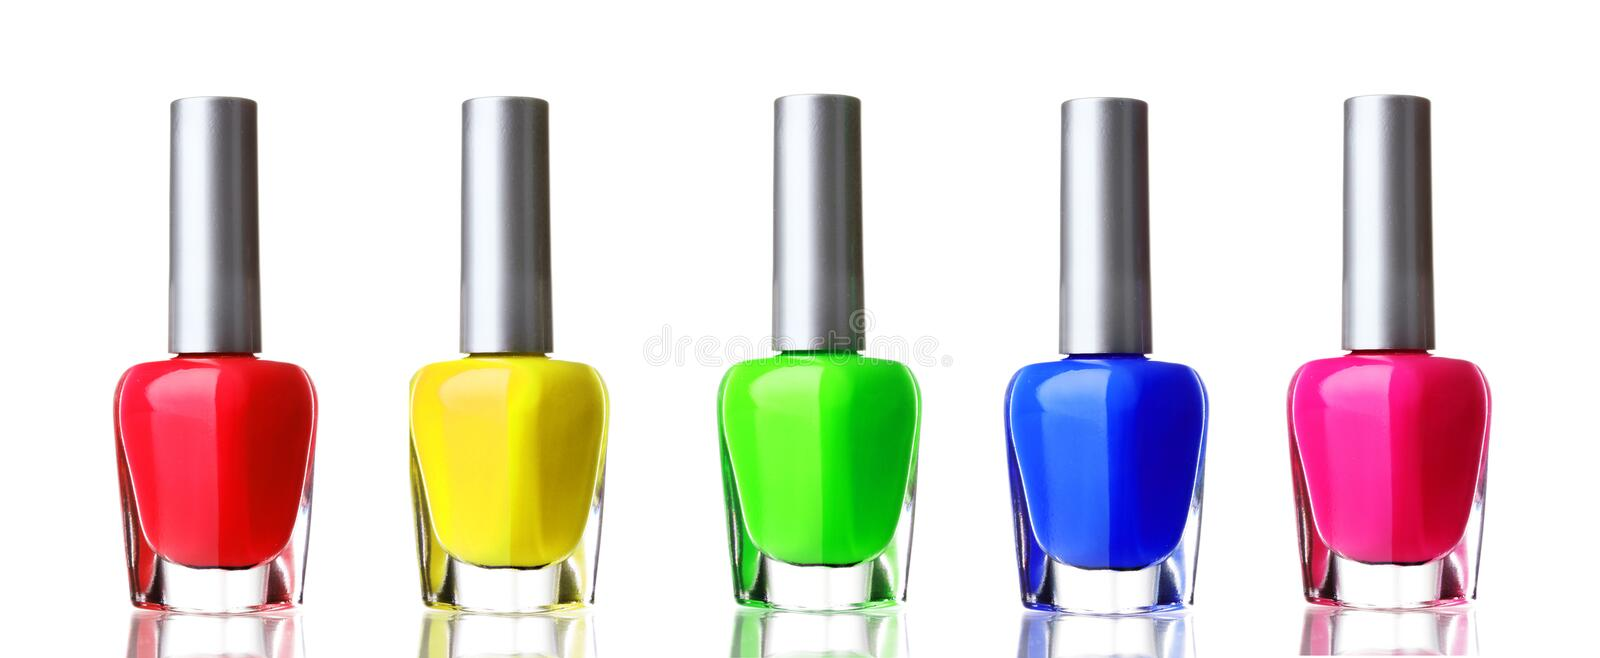 Vernis à ongles lumineux image stock